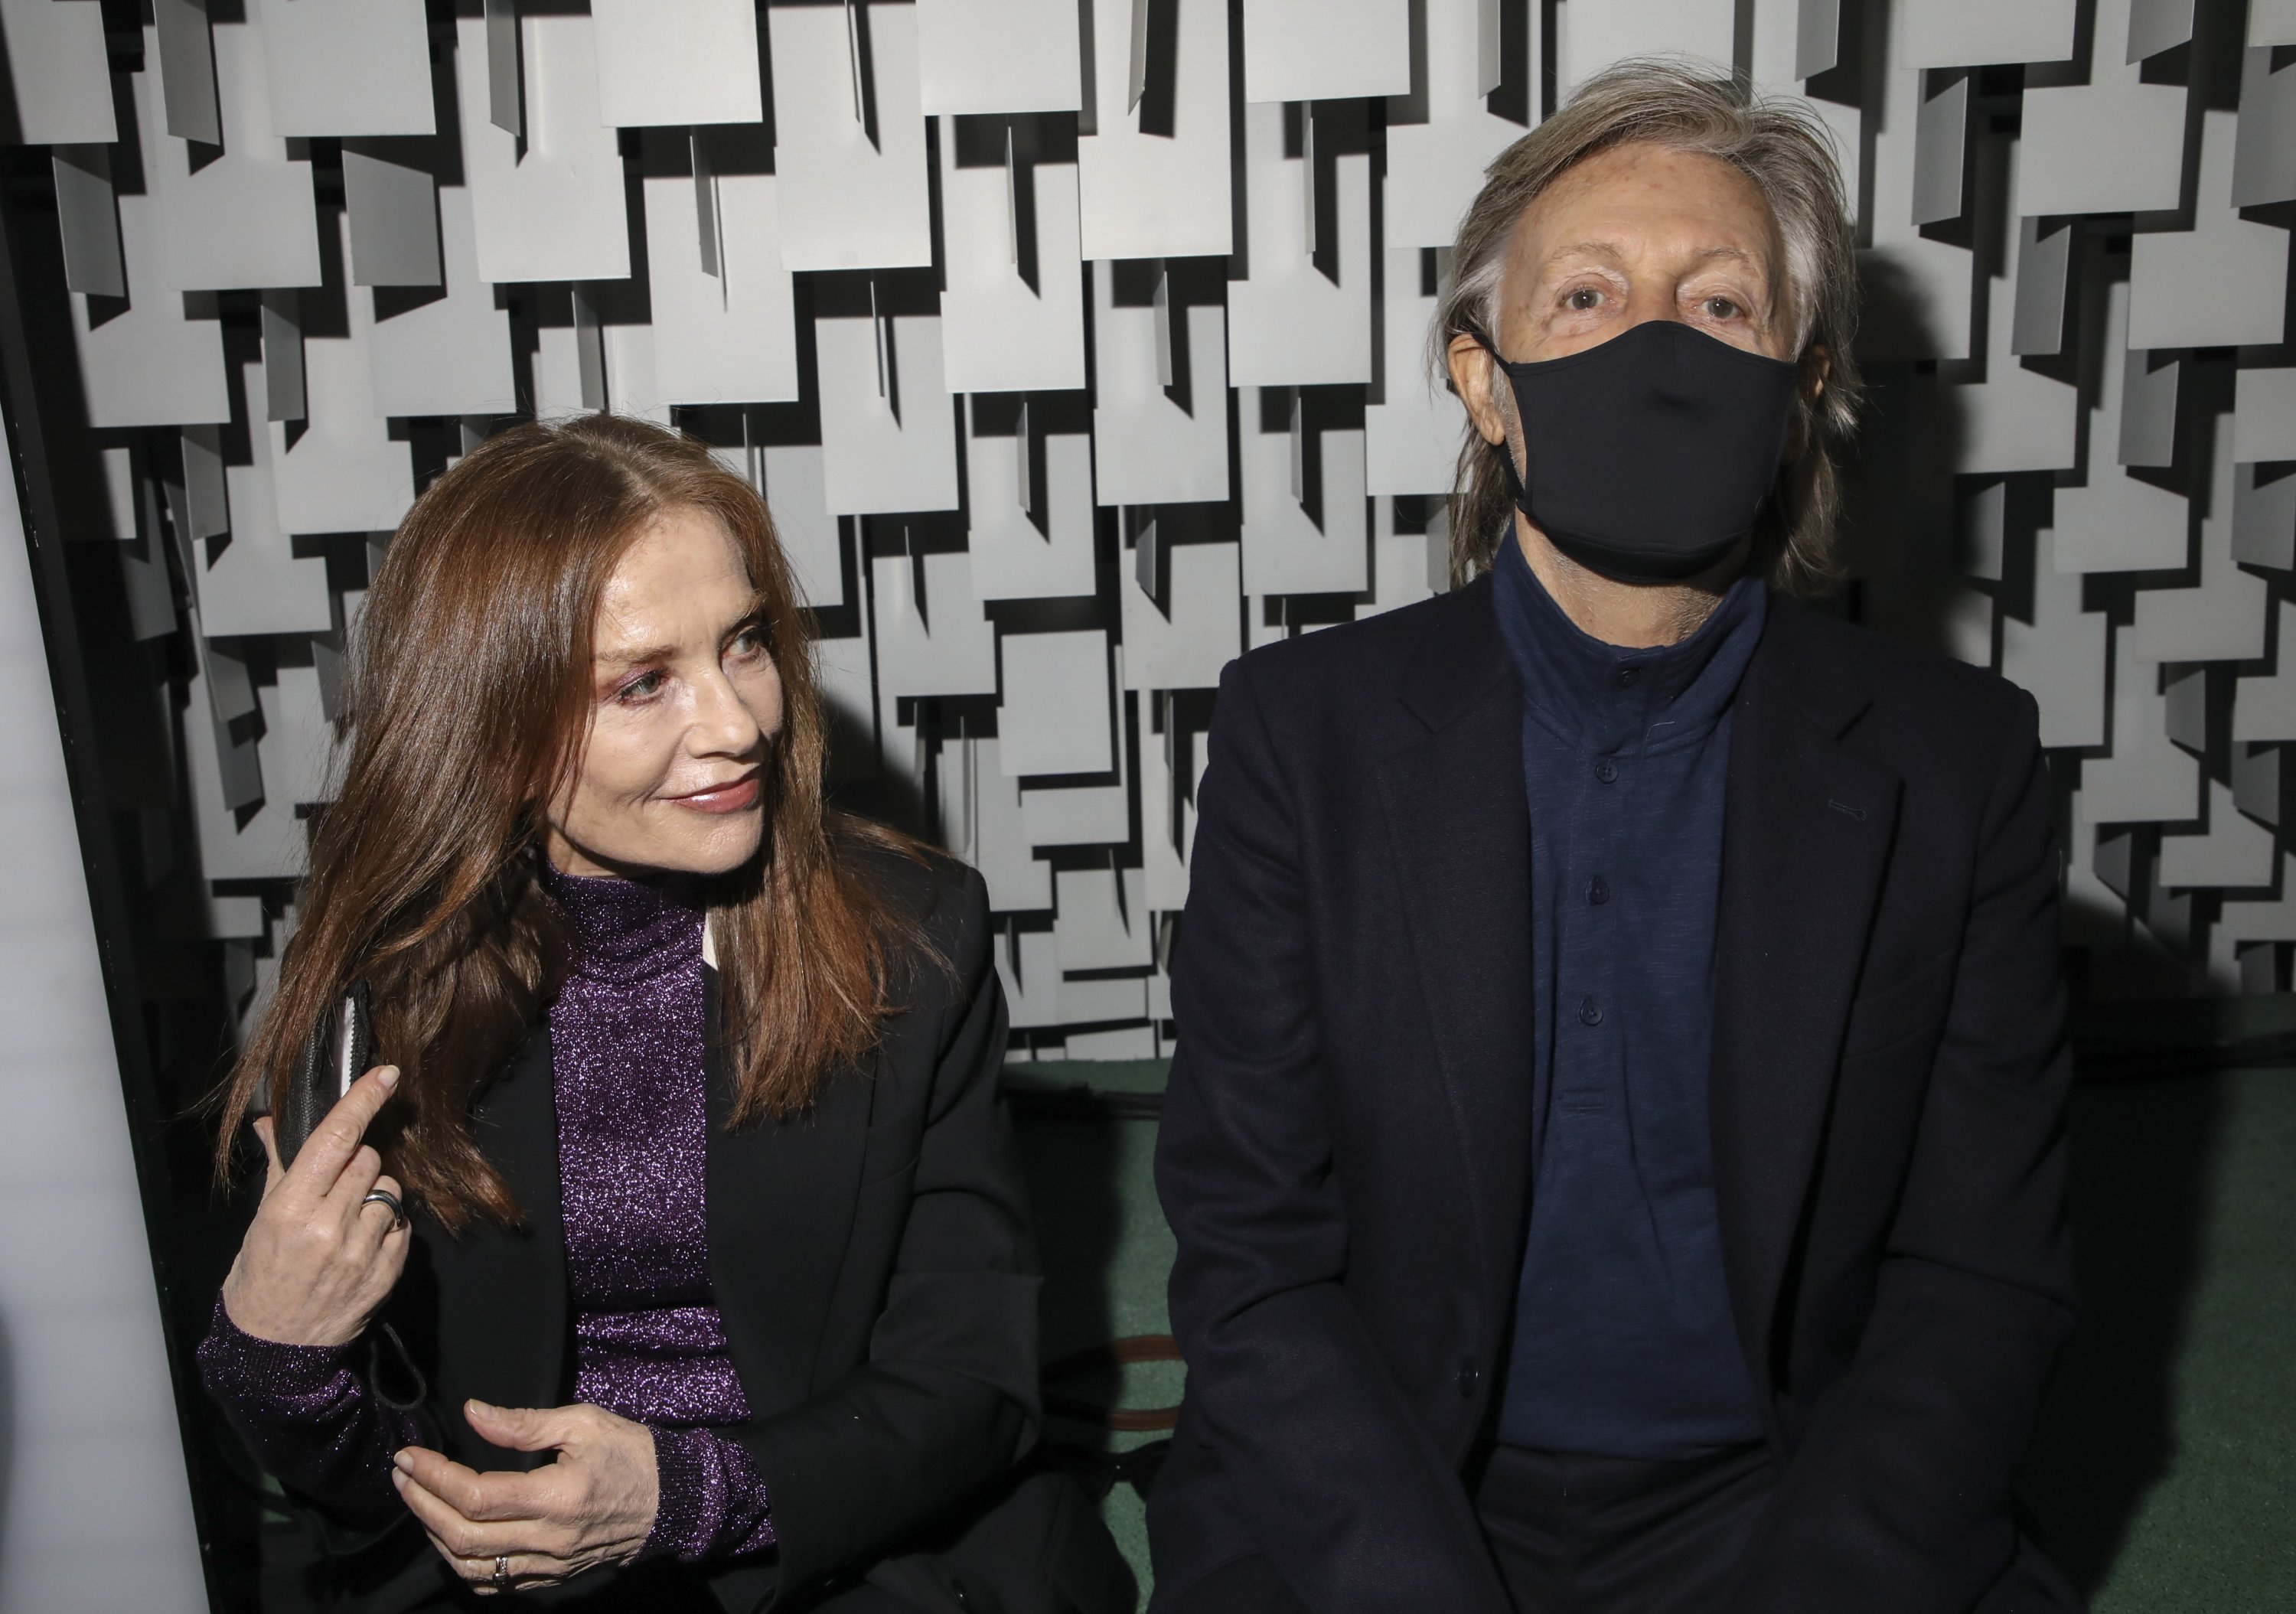 Isabelle Huppert (L) and Paul McCartney attend the Stella McCartney Spring-Summer 2022 ready-to-wear fashion show presented in Paris, France, Oct. 4, 2021. (AP Photo)